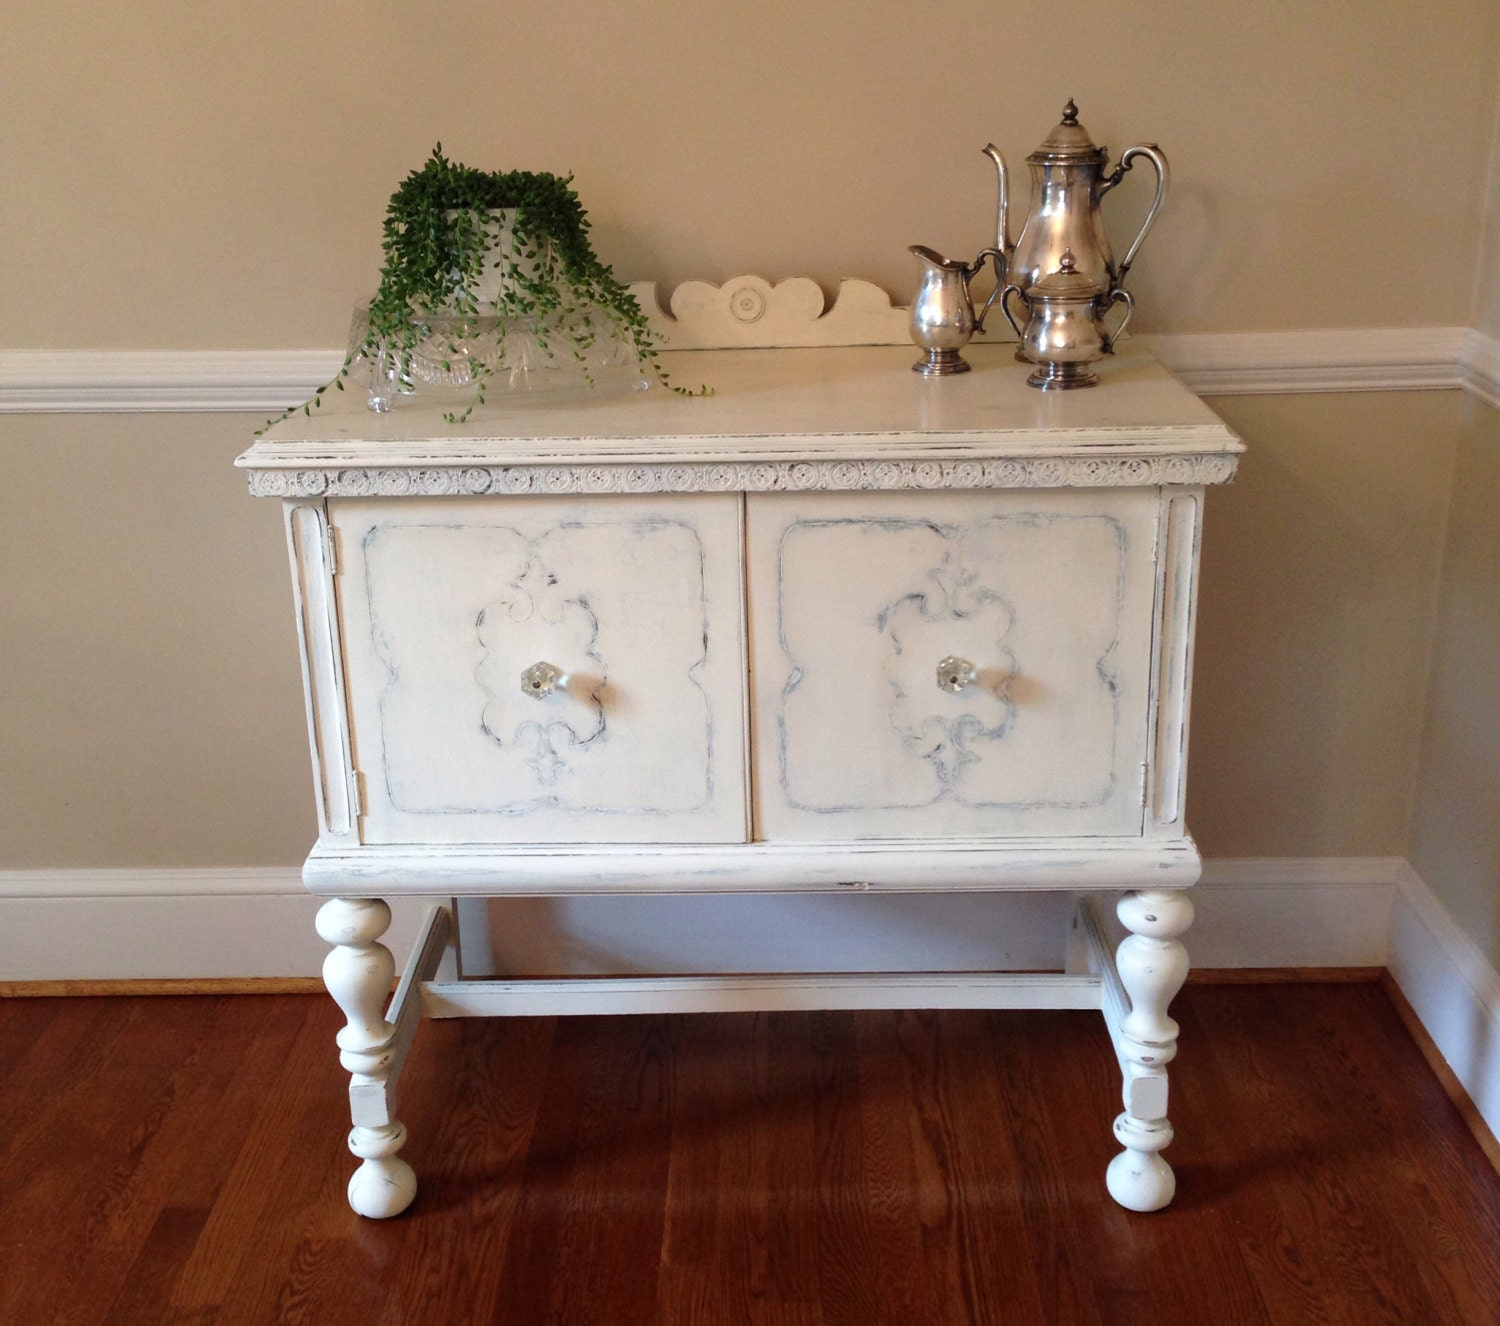 Annie sloan chalk painted small antique buffet sideboard in for Painted buffet sideboard